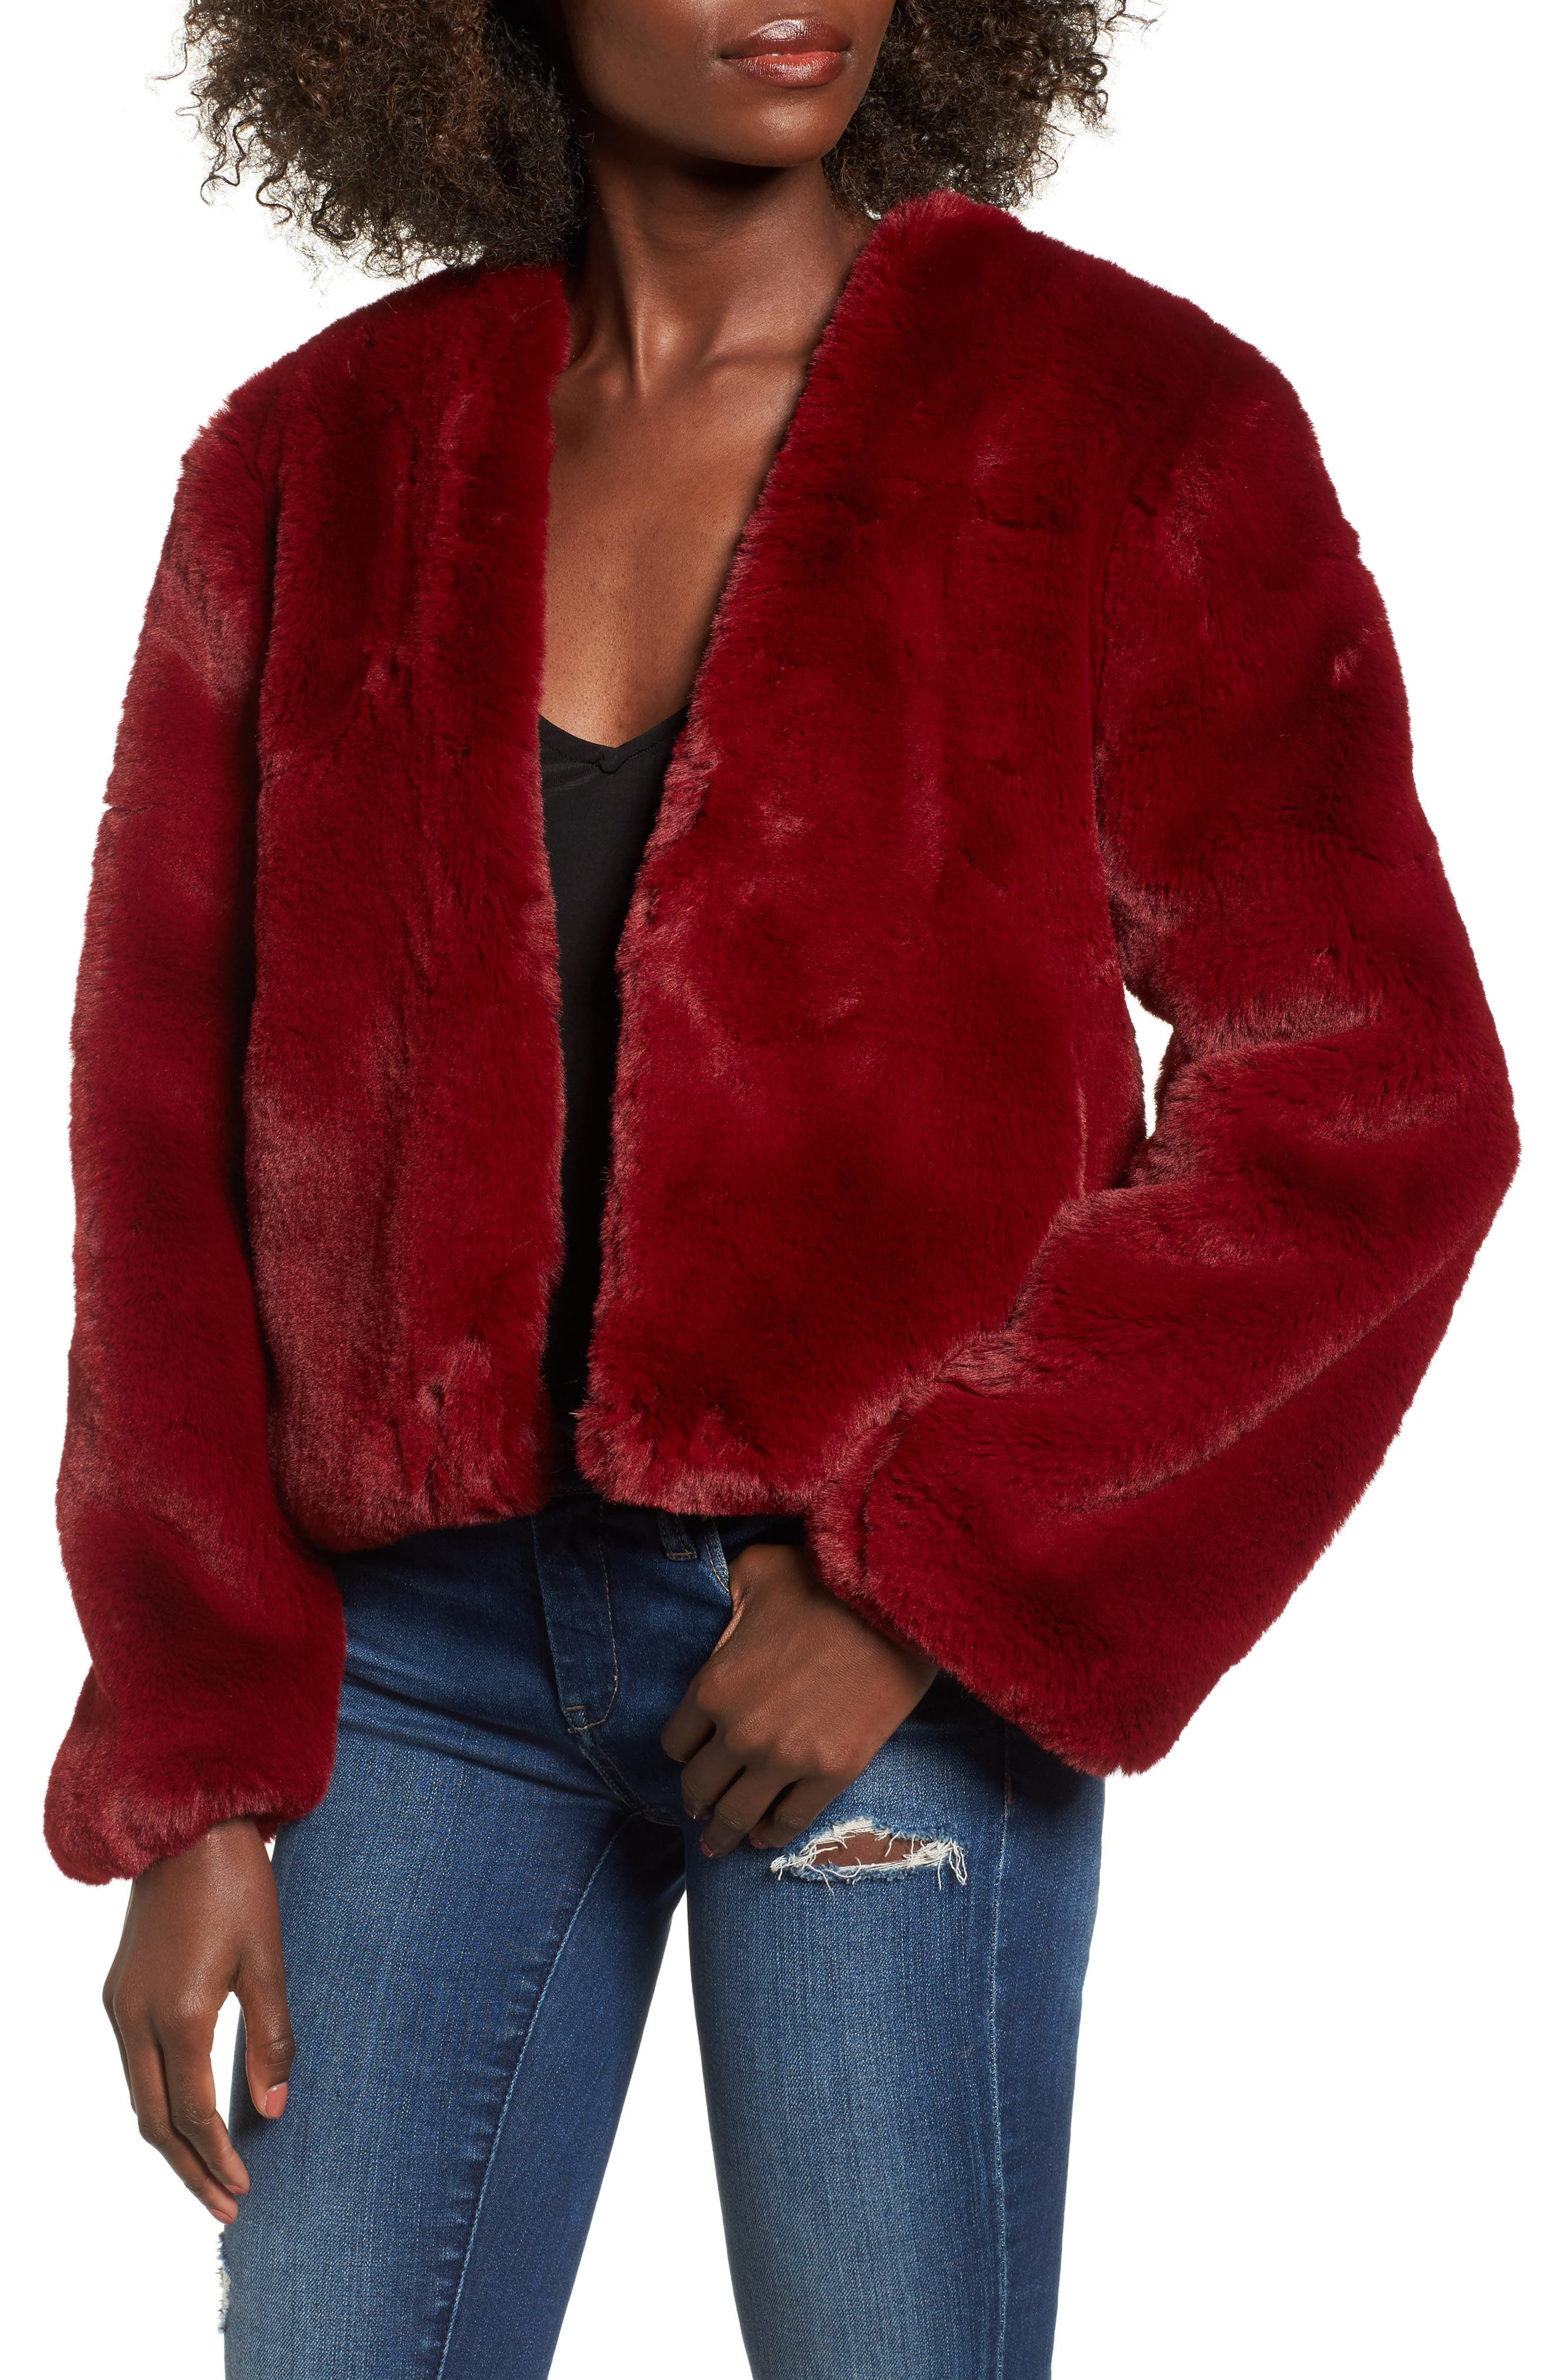 Lonely Hearts Faux Fur Jacket,                             Main thumbnail 1, color,                             600